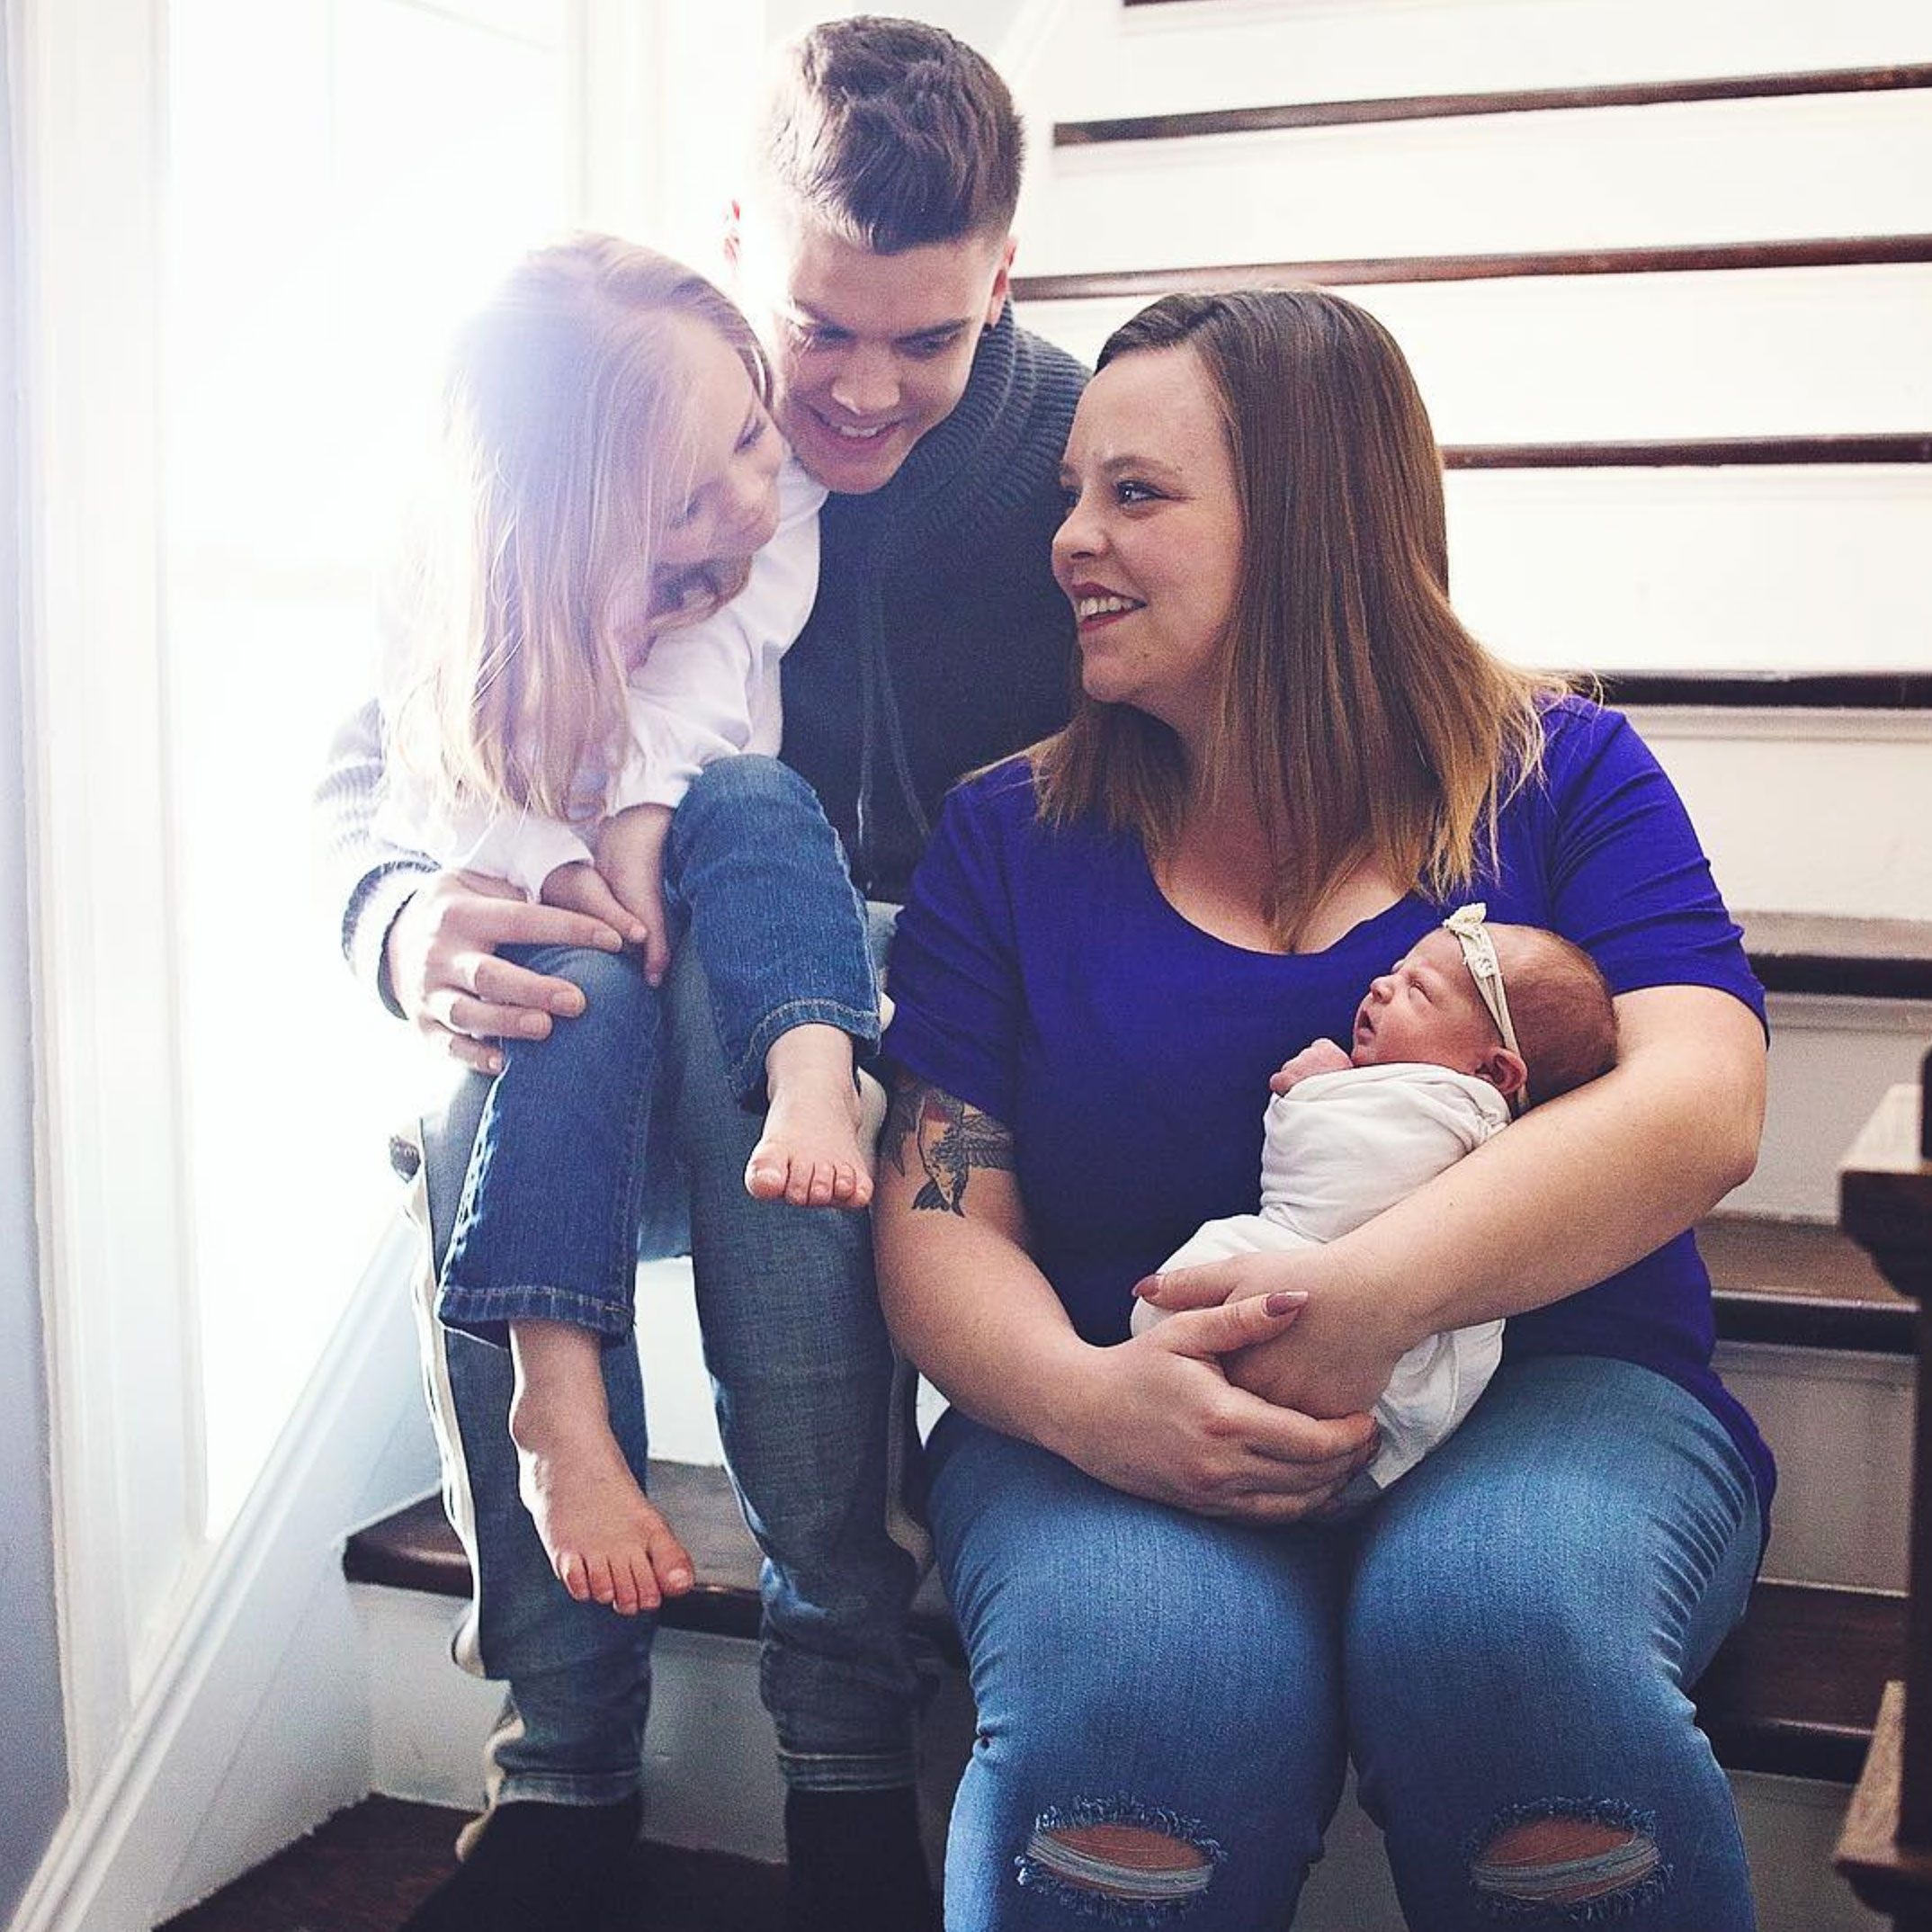 Tyler-Baltierra-and-Catelynn-Lowell-Share-New-Pics-of-1-Month-Old-Daughter-Vaeda